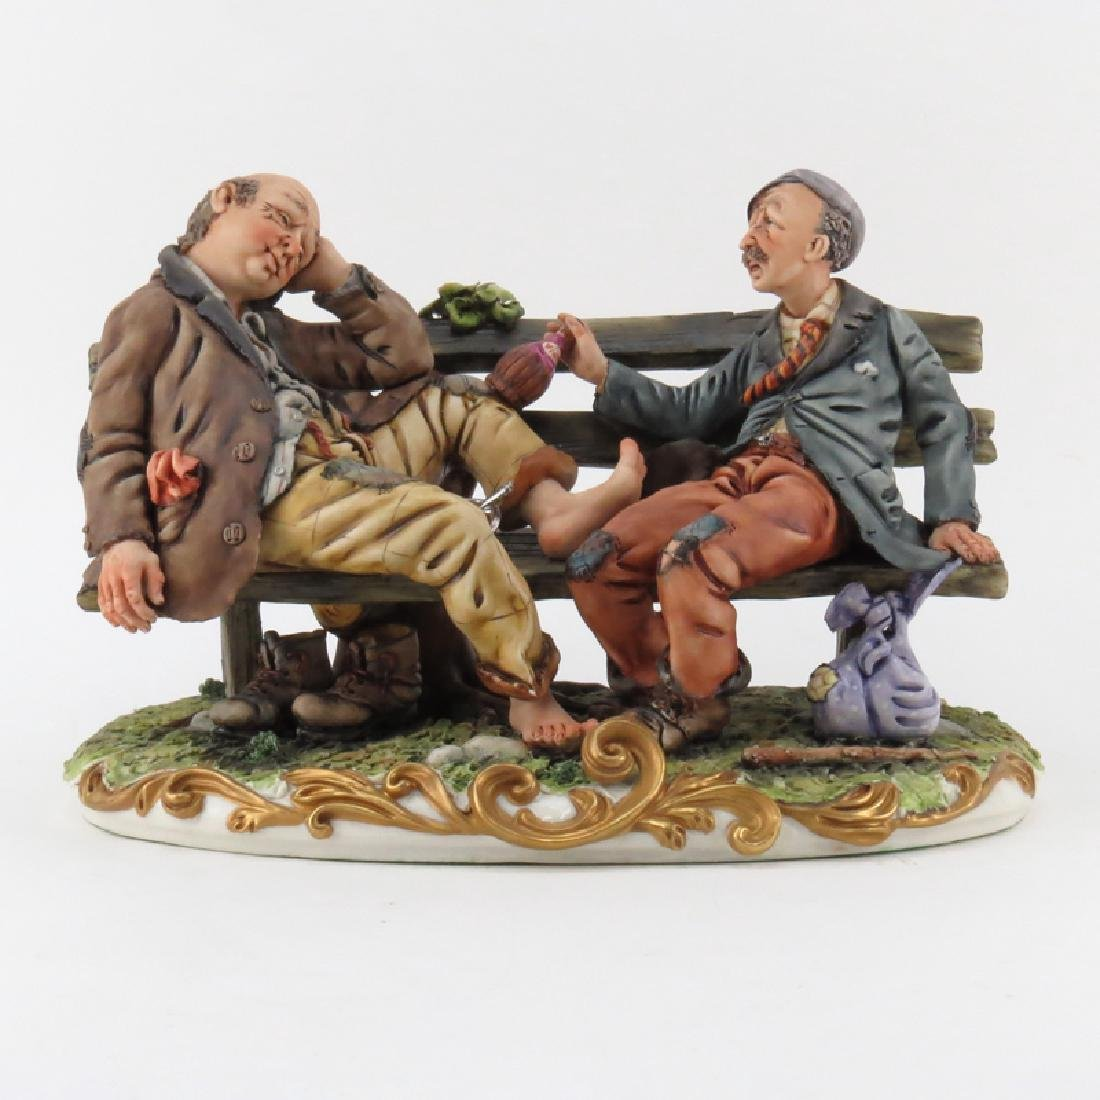 Vintage Capodimonte Porcelain Group, Two Tramps on